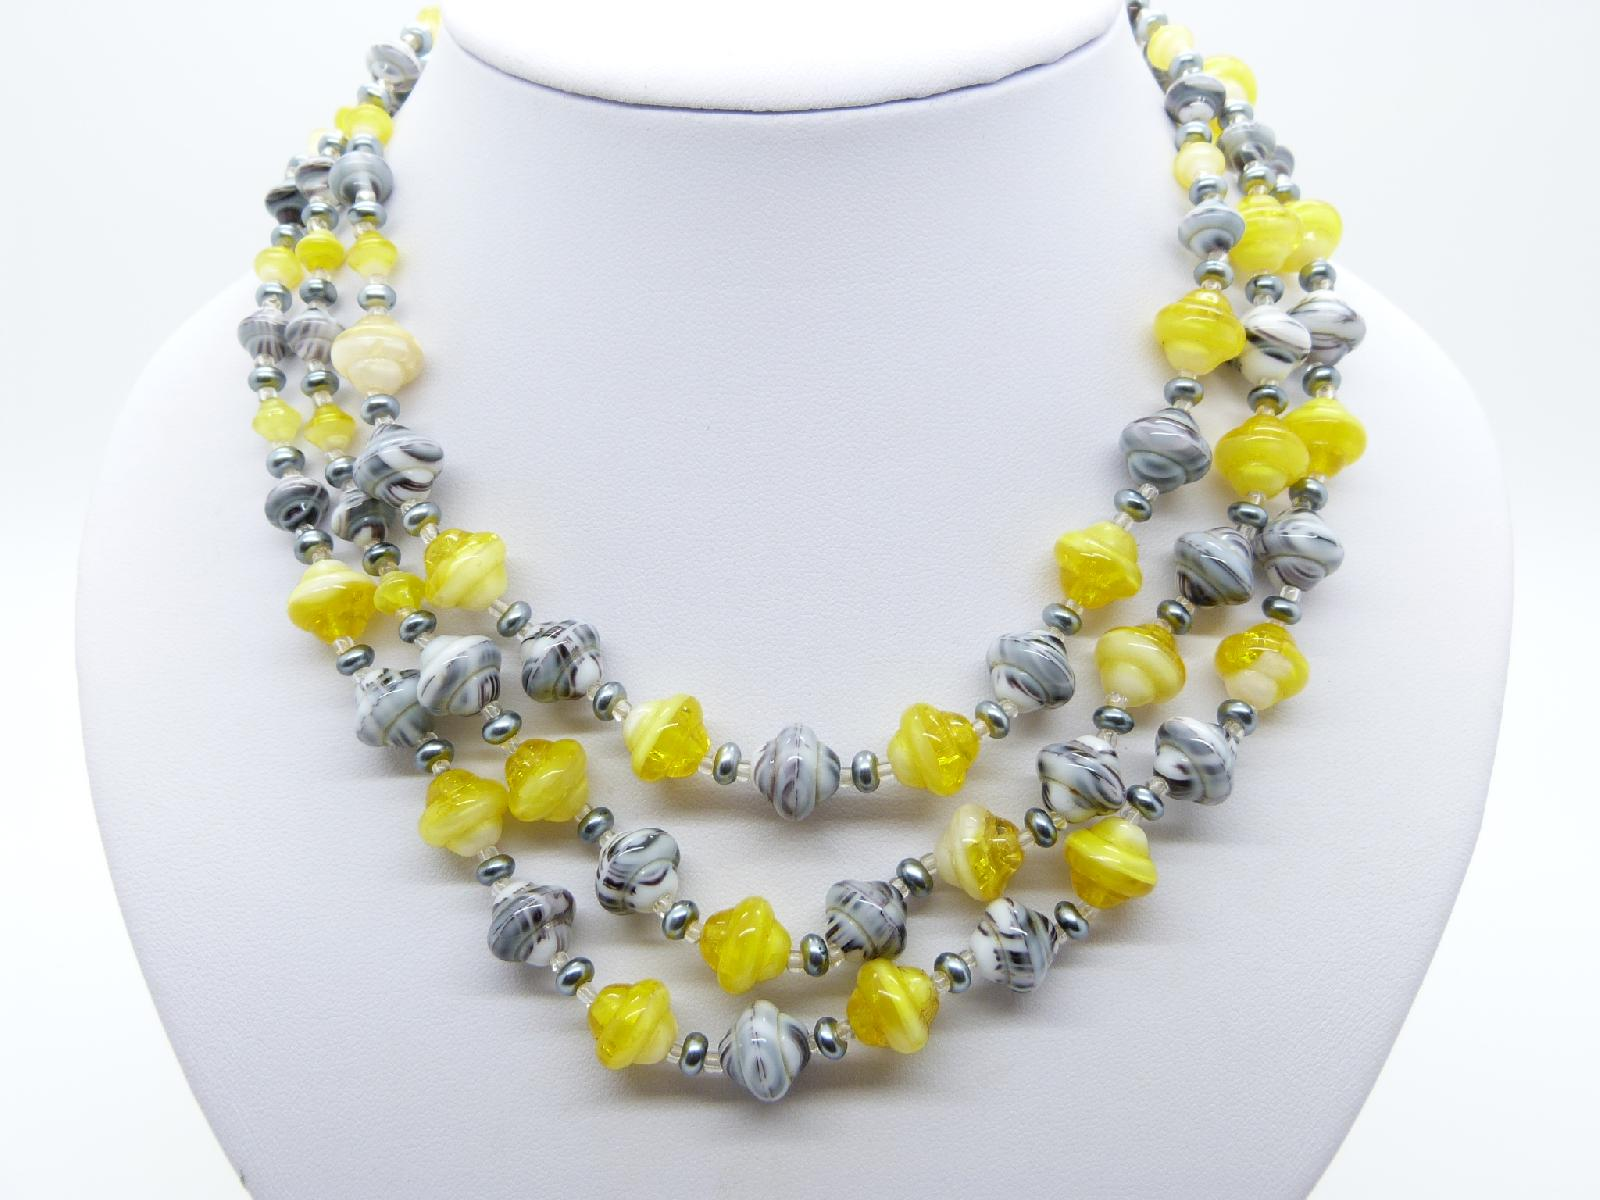 £40.00 - Vintage 50s Three Row Yellow and Grey Swirl Murano Glass Bead Necklace